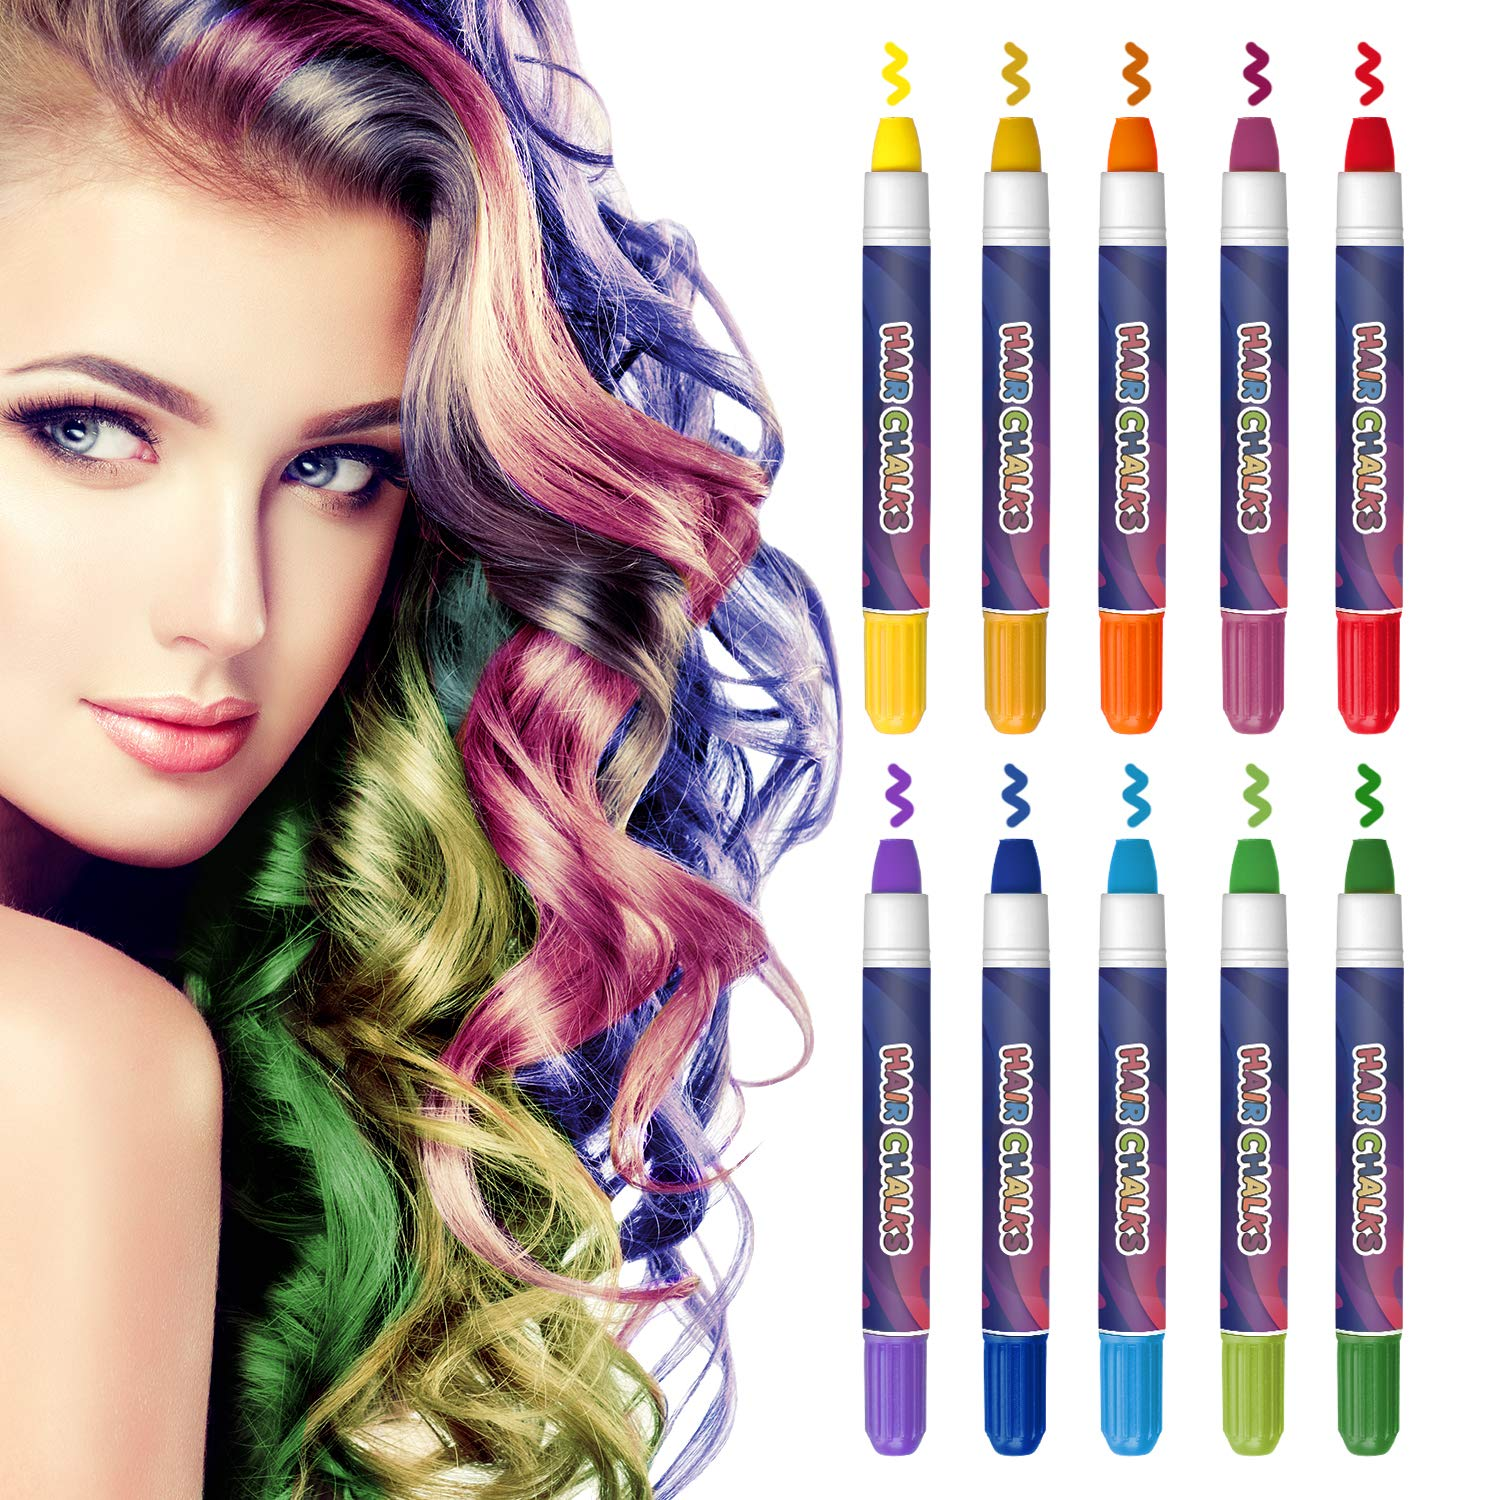 Amazon Com Coolkesi Hair Chalk For Girls Gifts 10 Bright Colors Temporary Hair Chalk Pens Washable Hair Color Chalk Set Safe For Kids Teen Popular Chalks On Birthday Cosplay Christmas Party Makeup Beauty